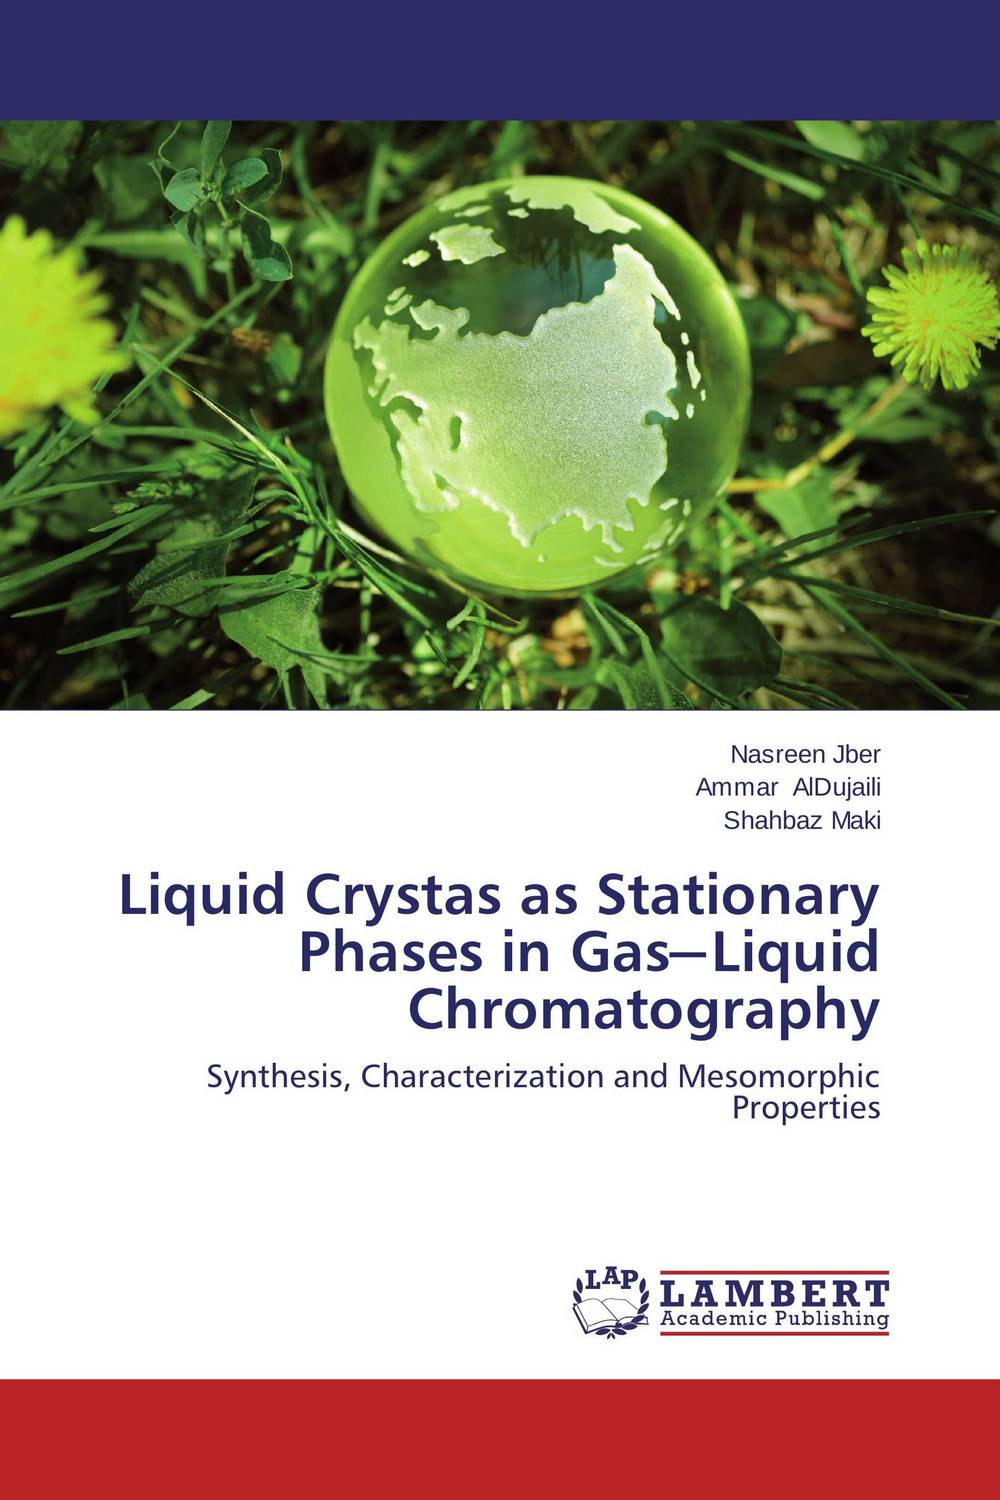 Liquid Crystas as Stationary Phases in Gas-Liquid Chromatography the heir